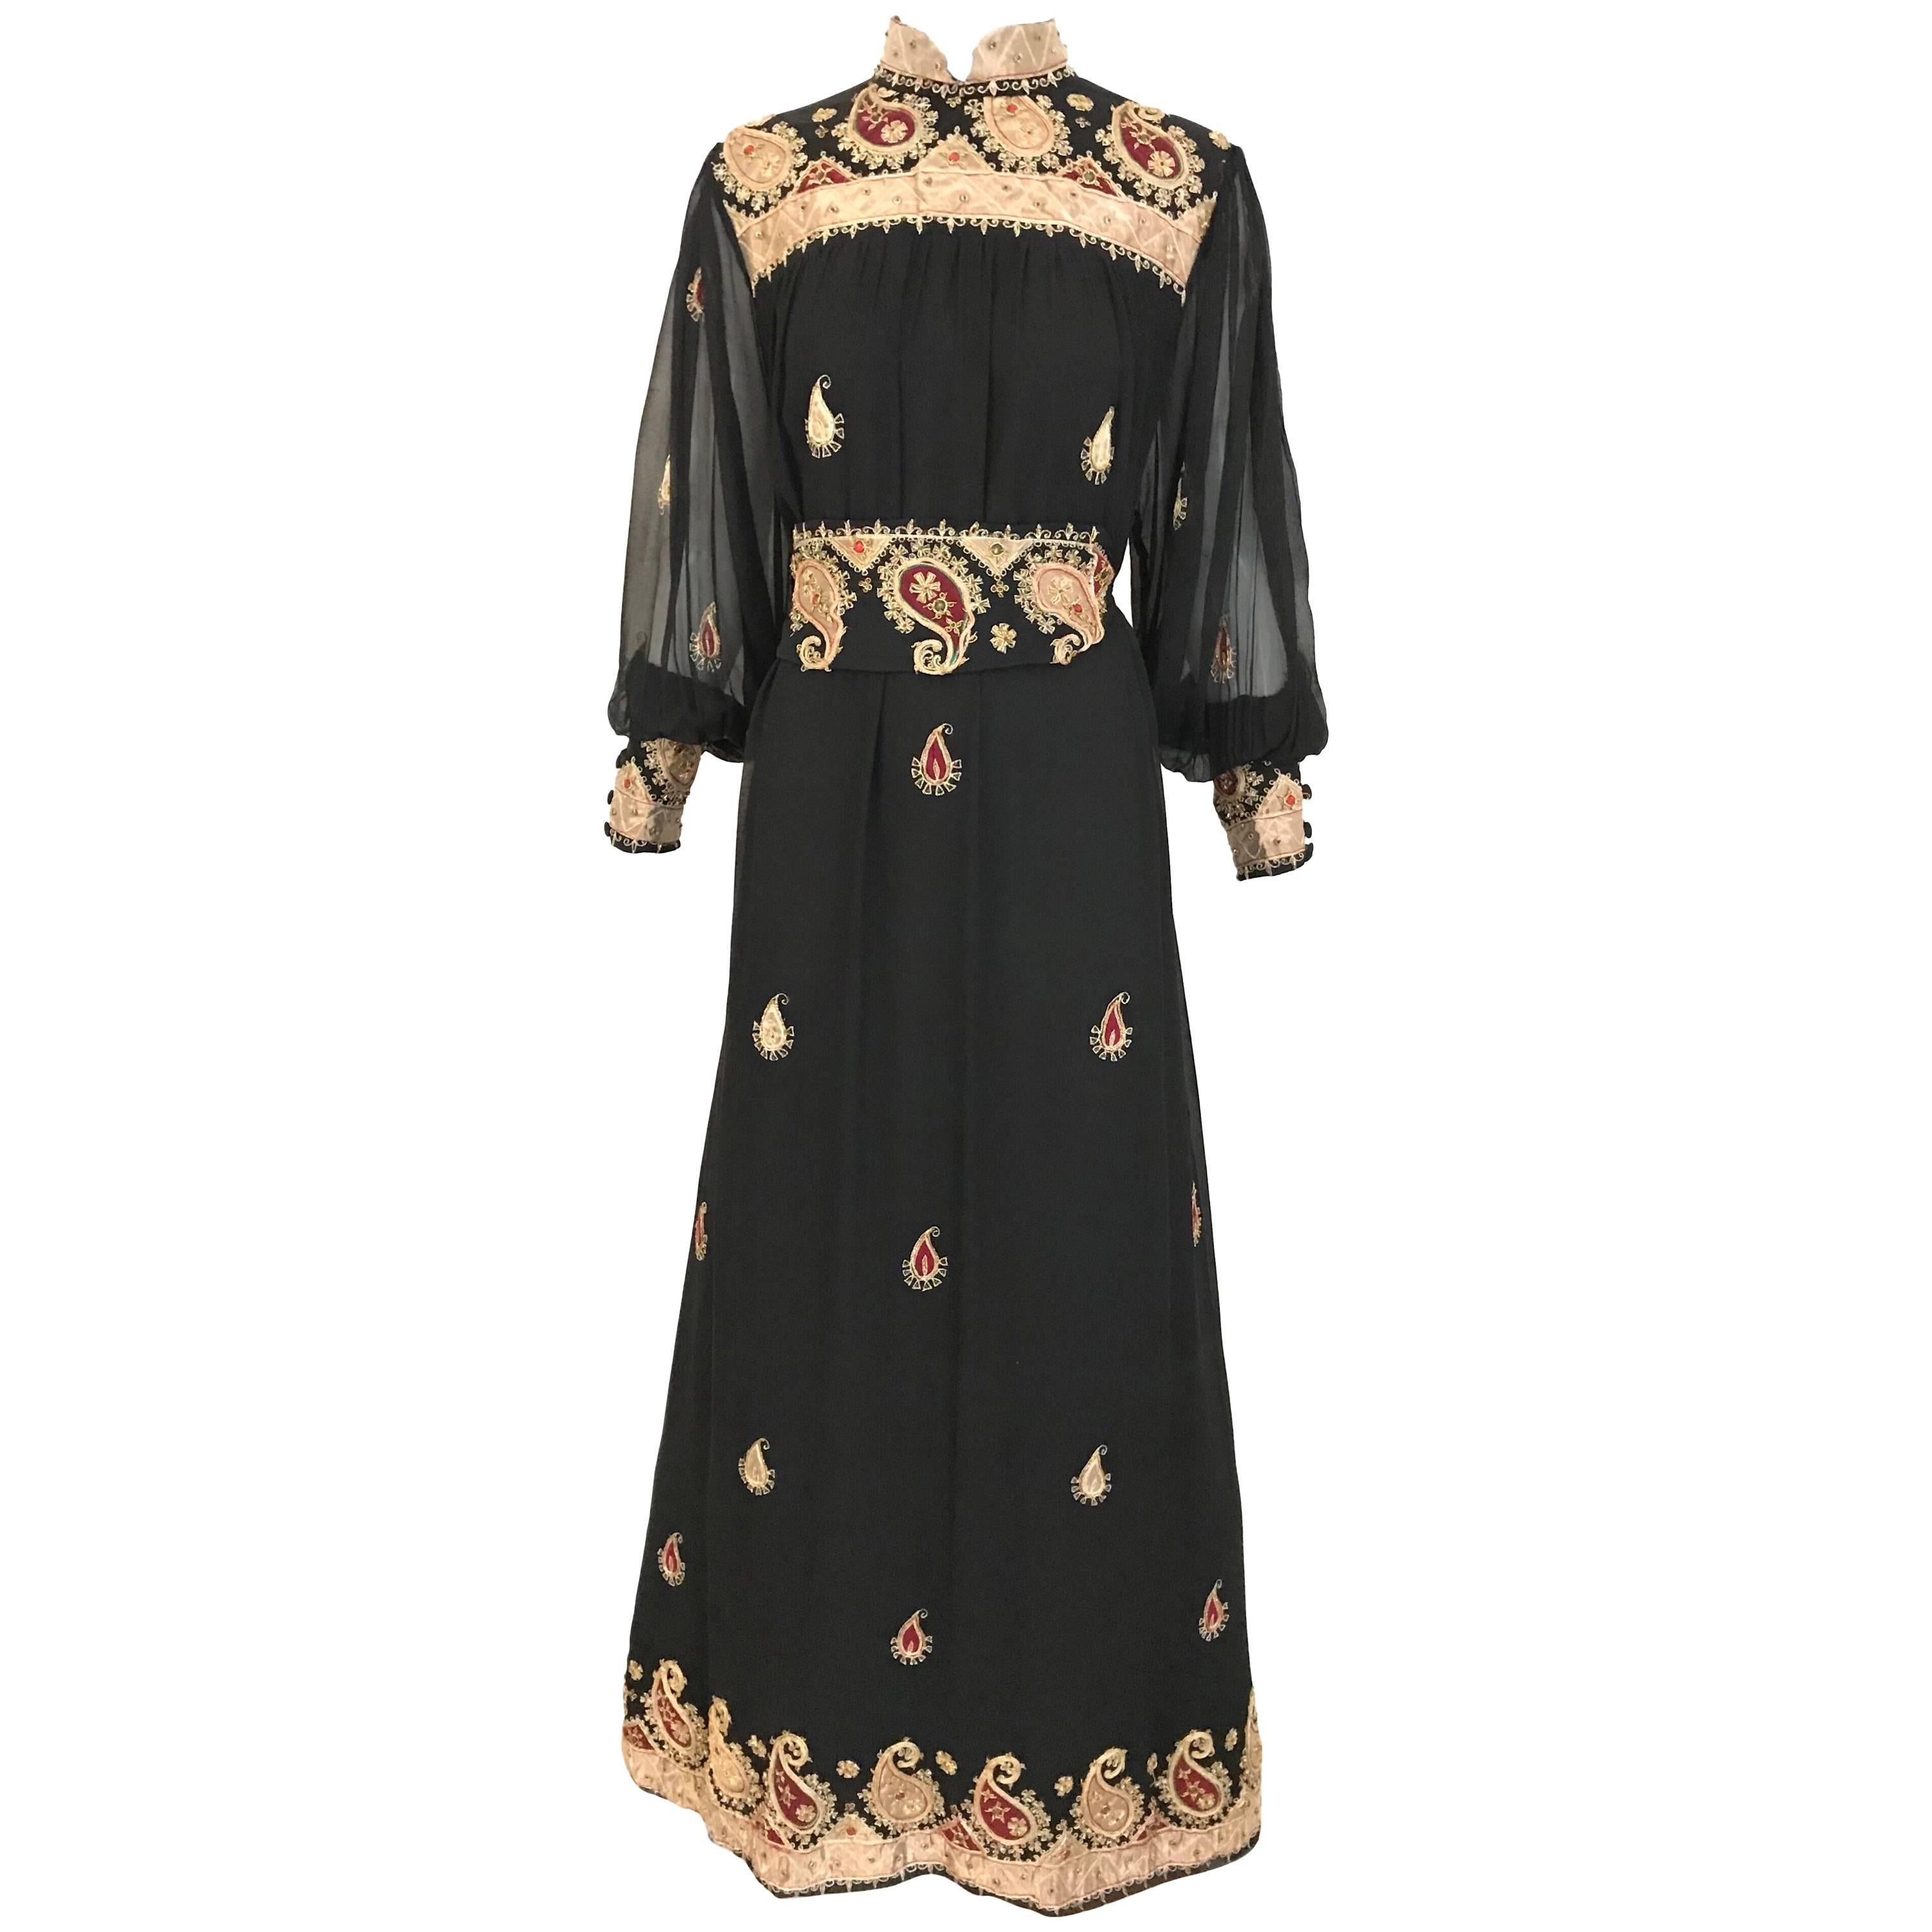 Vintage Black and Gold Paisley Embroidered Silk Caftan Maxi Dress with Belt